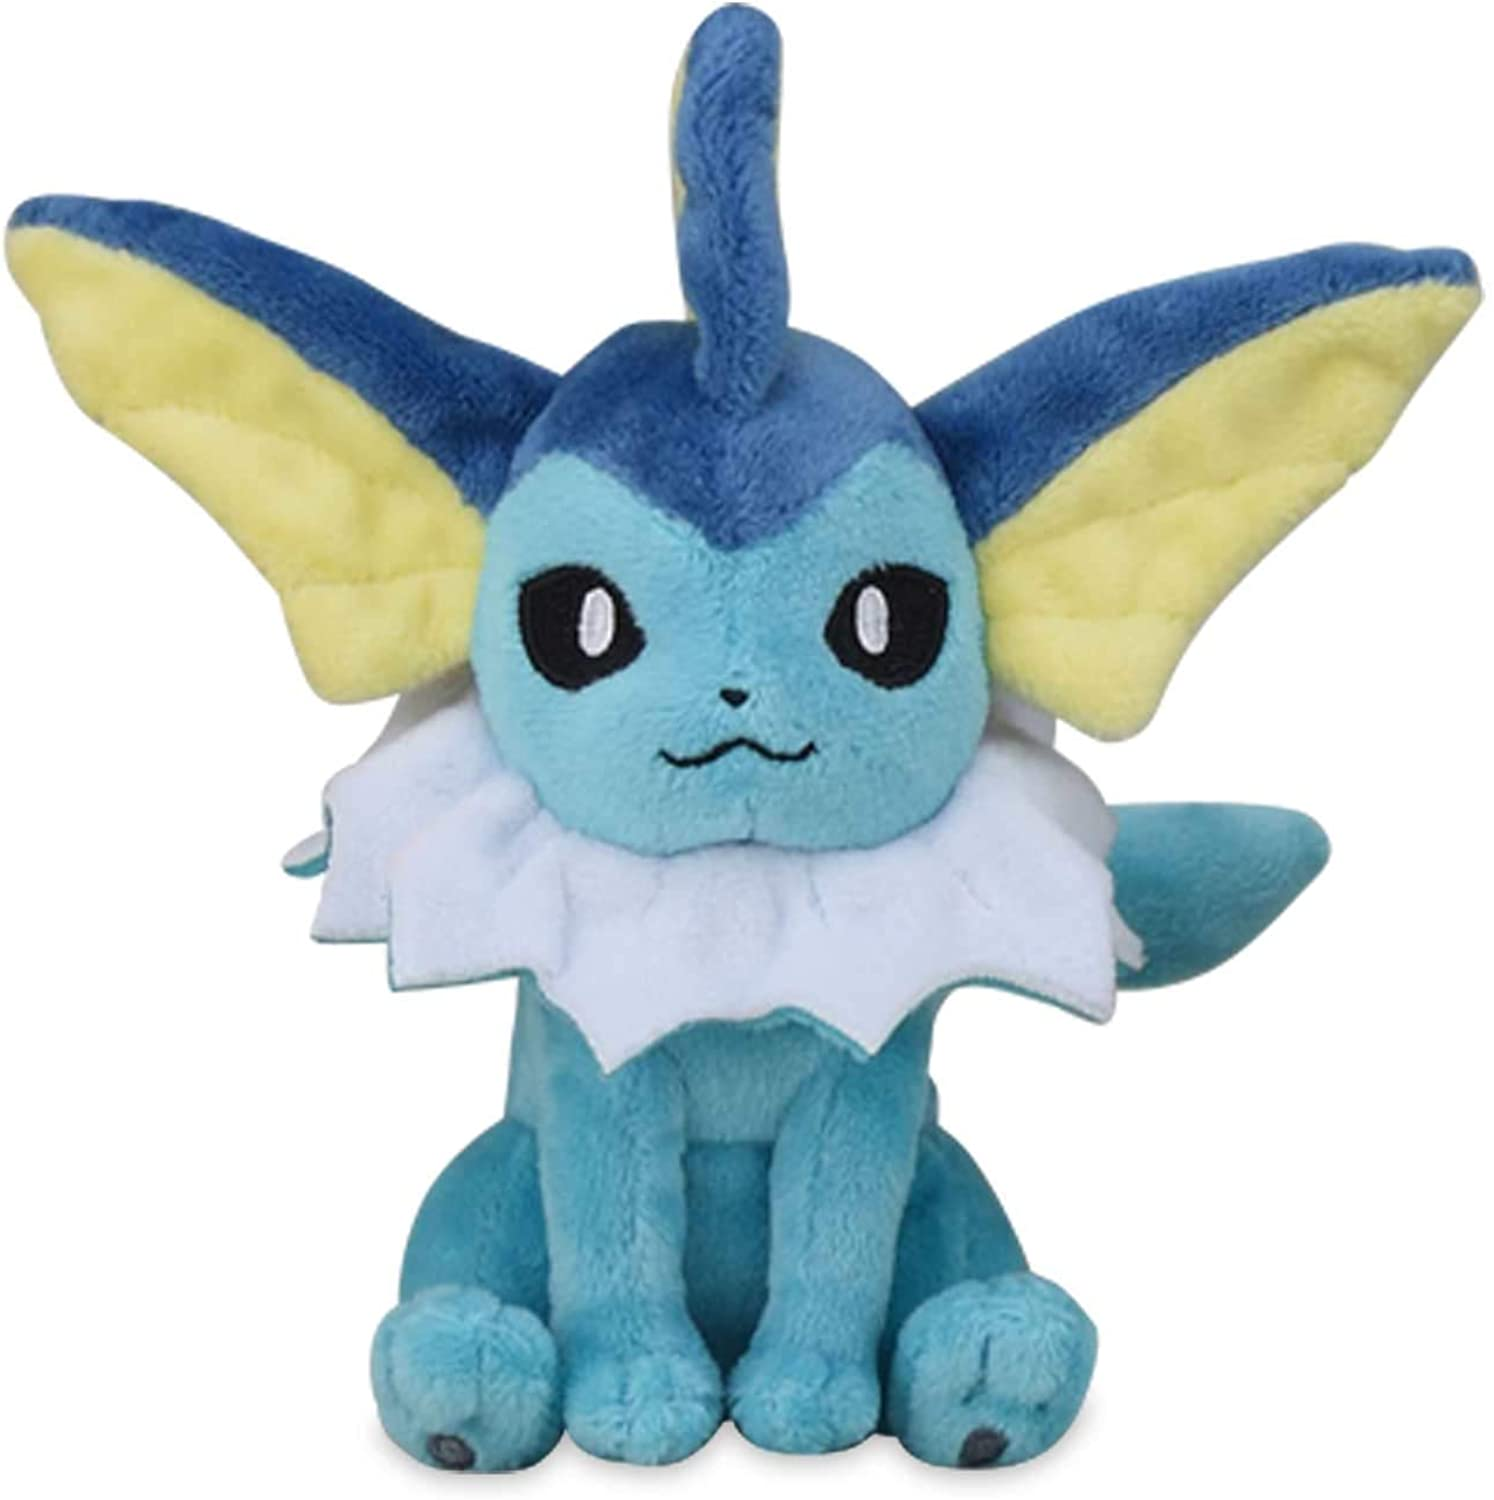 Pokémon Plush Sitting Cuties Vaporeon